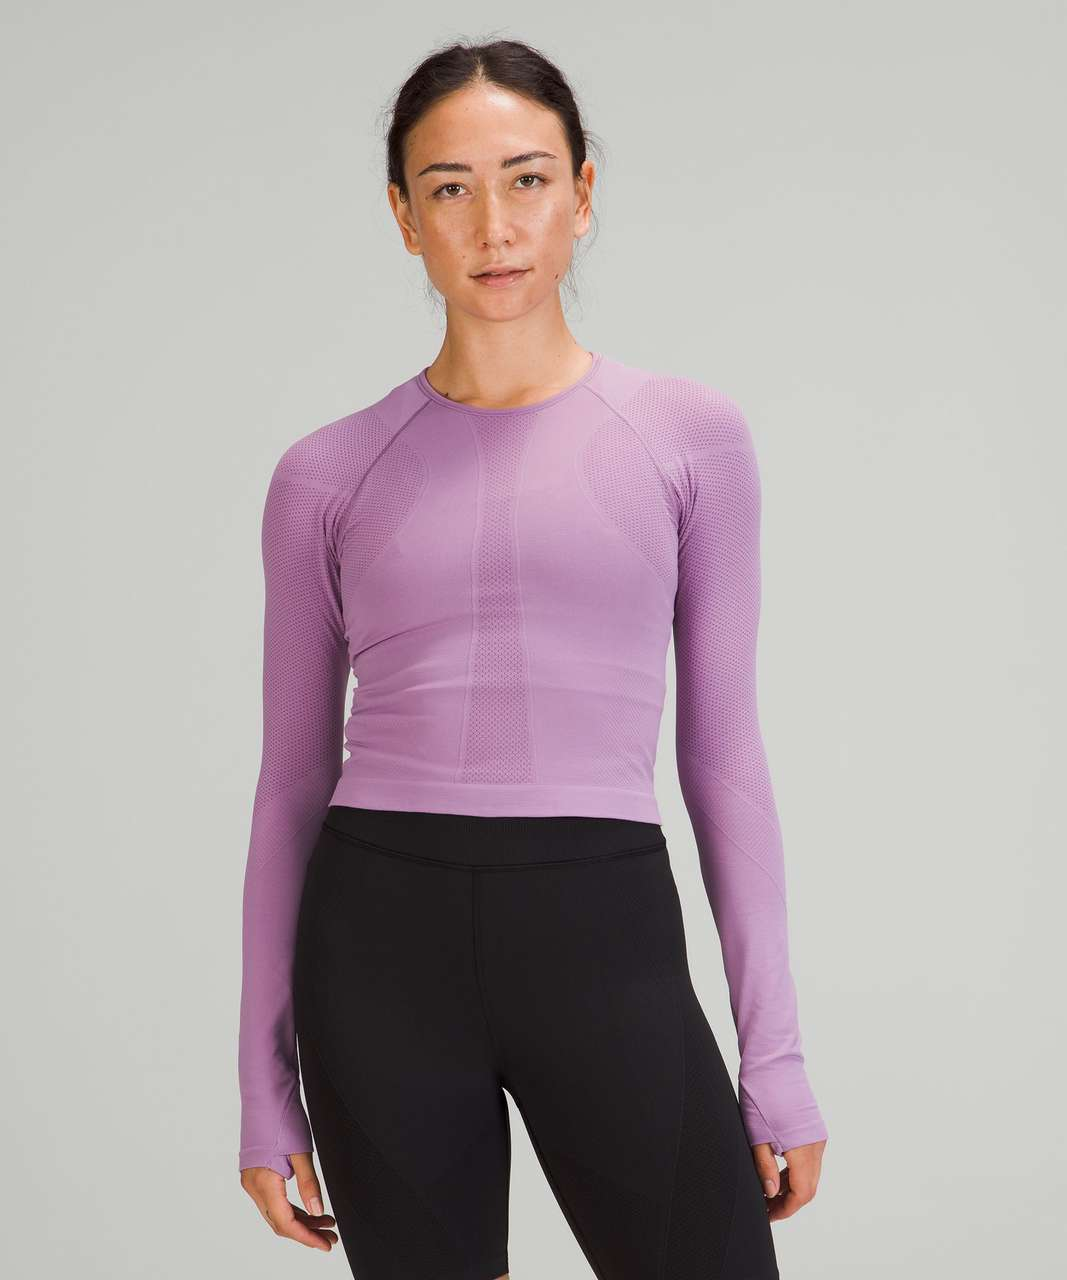 Lululemon For the Chill of it Long Sleeve - Wisteria Purple